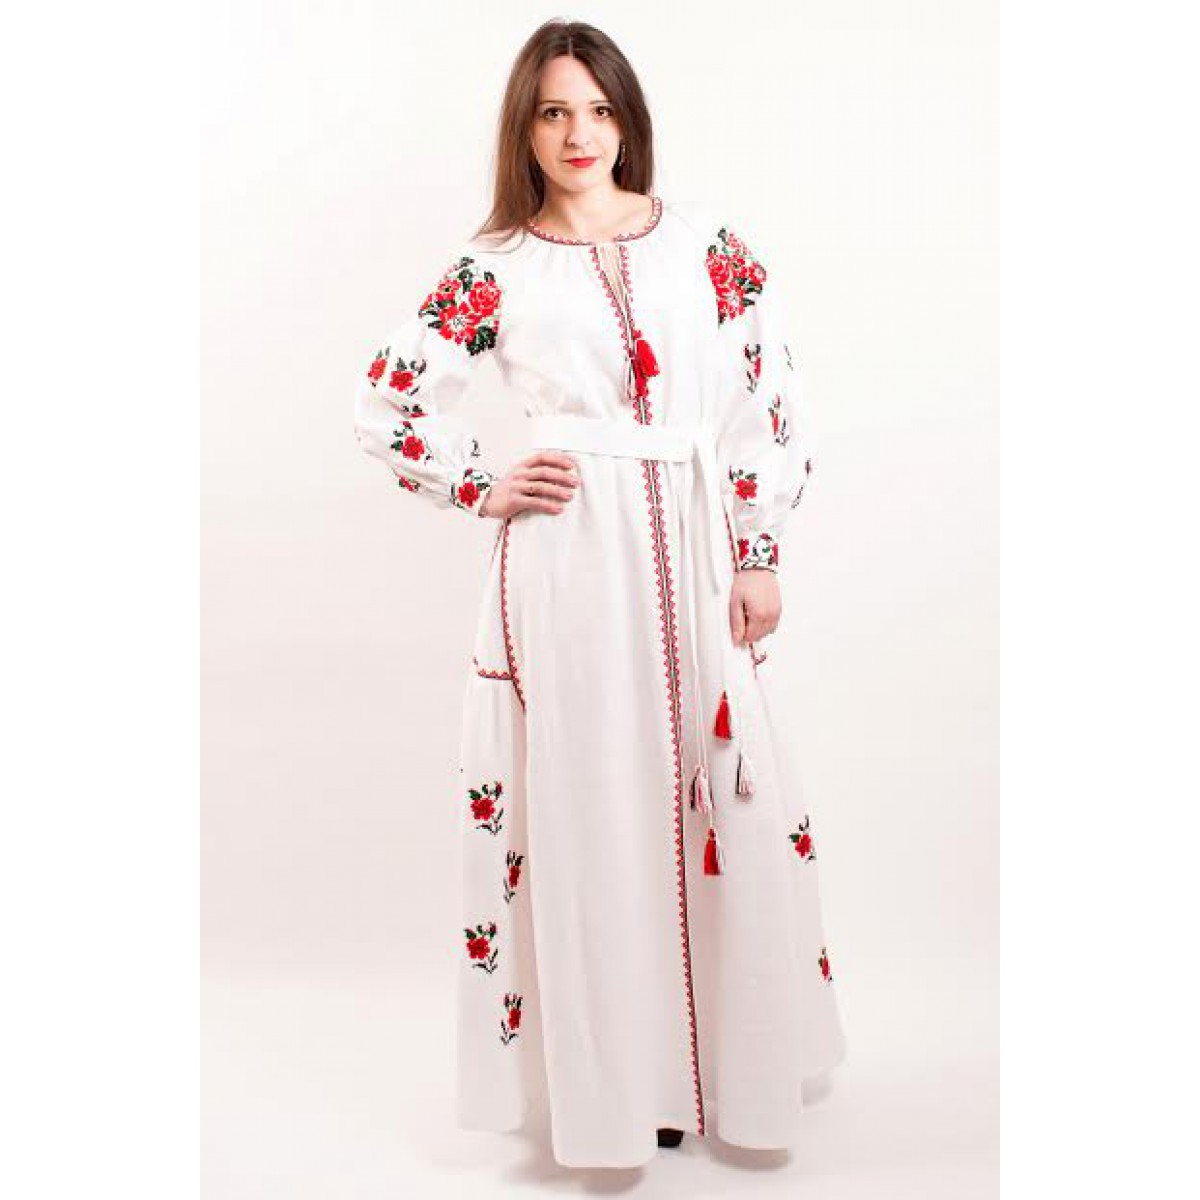 47df21f8bb4 Boho Style Ukrainian Embroidered Maxi Broad Dress White on White